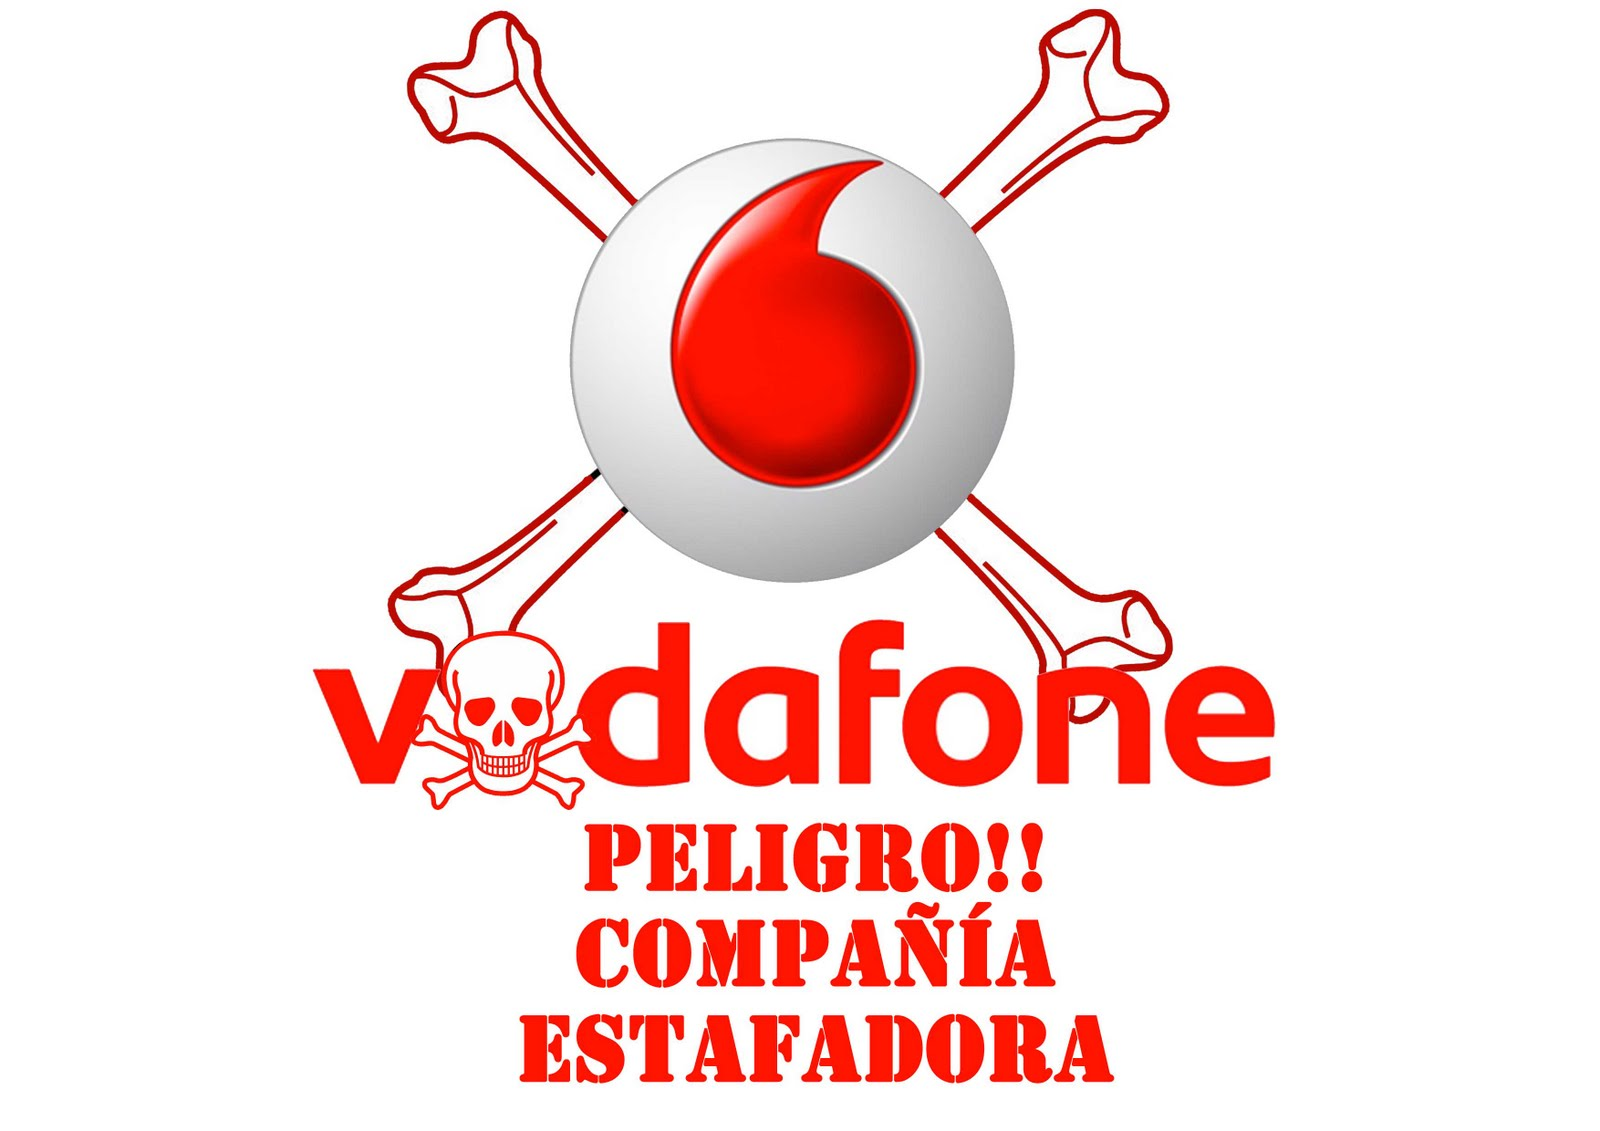 Off topic vodafone tambi n estafa a ongs vodafone es for Numero atencion al consumidor